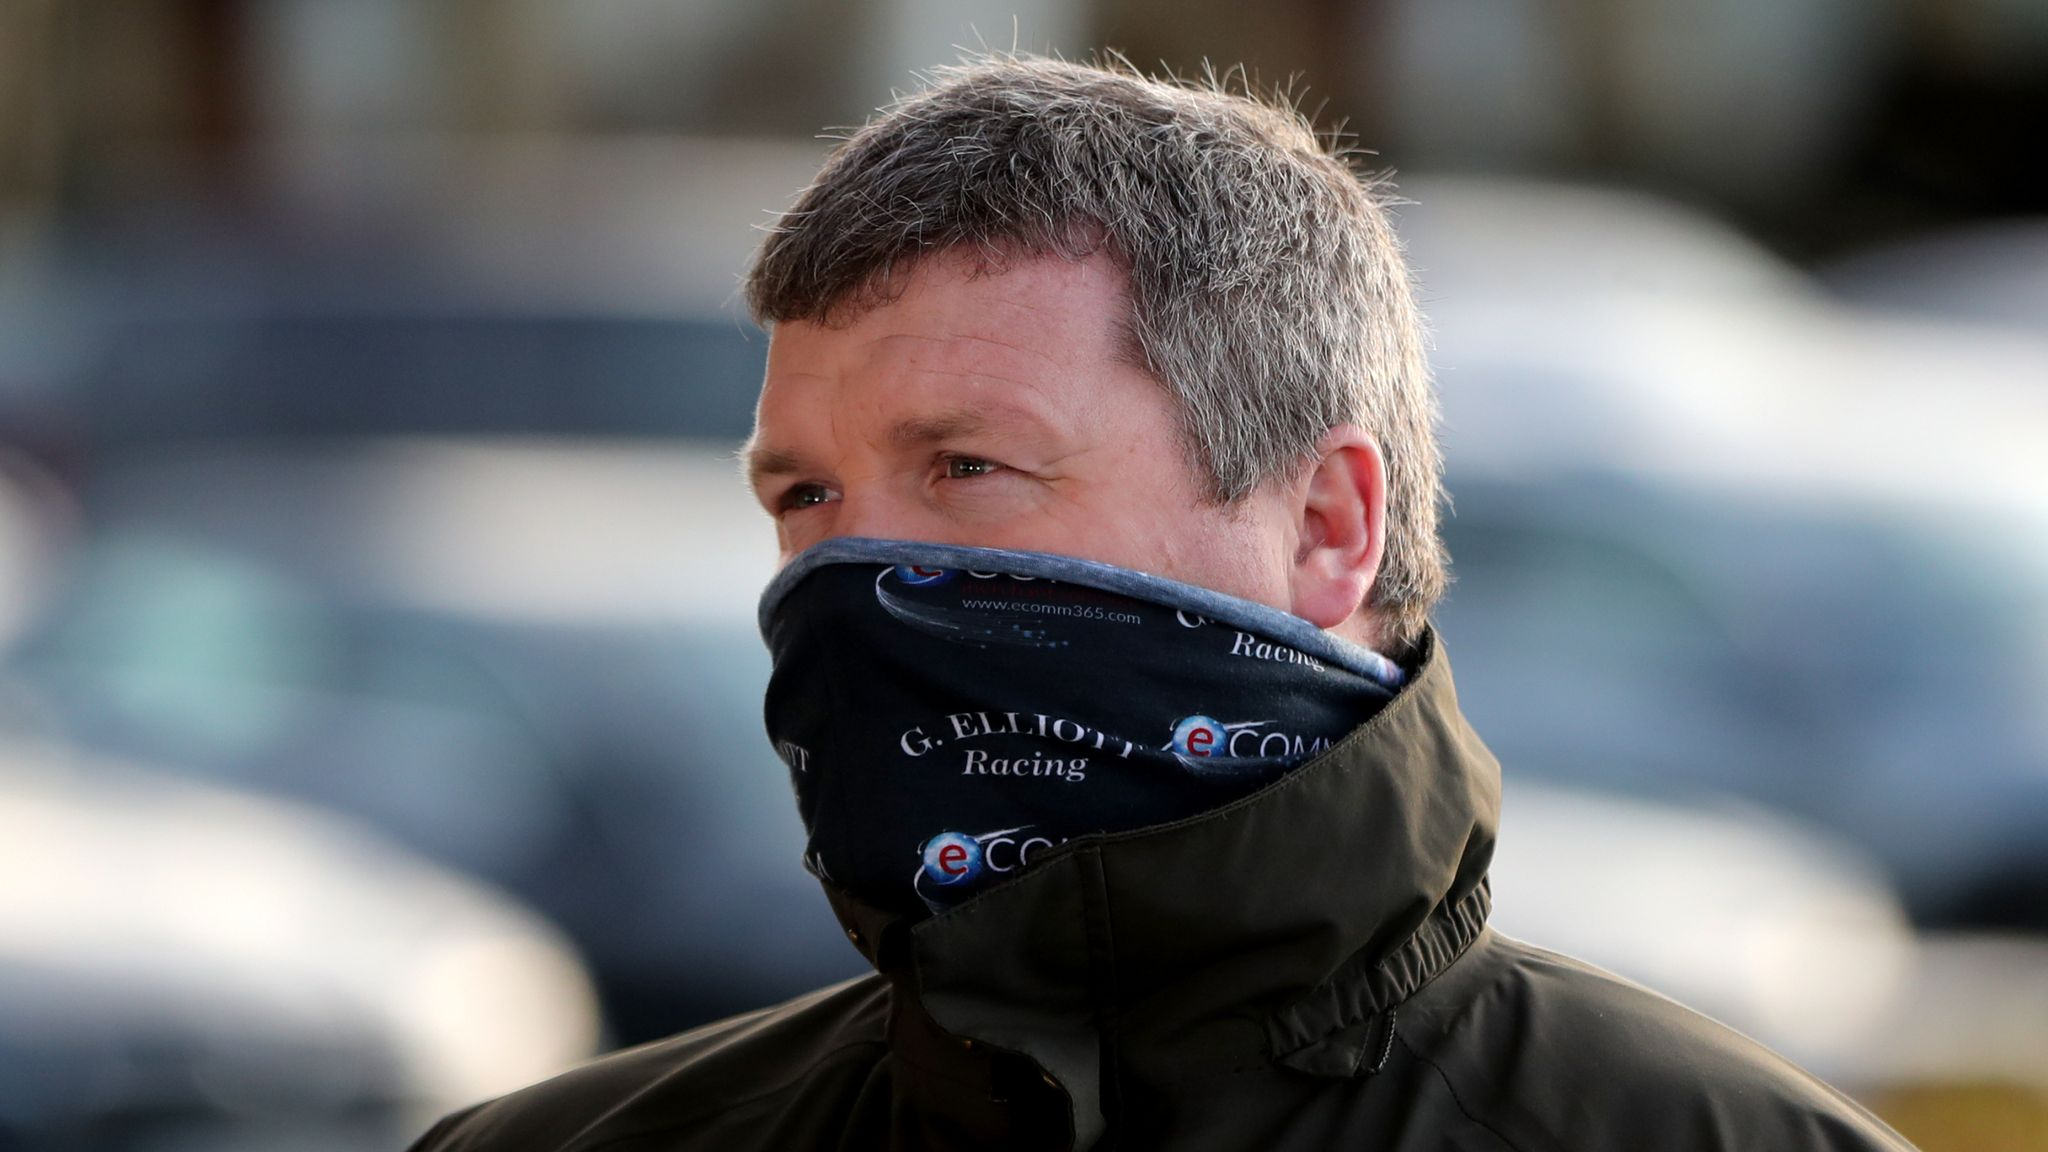 Gordon Elliott: Irish trainer dropped by Betfair as investigation into 'dead horse' photo is launched | Cricket News | Sky Sports